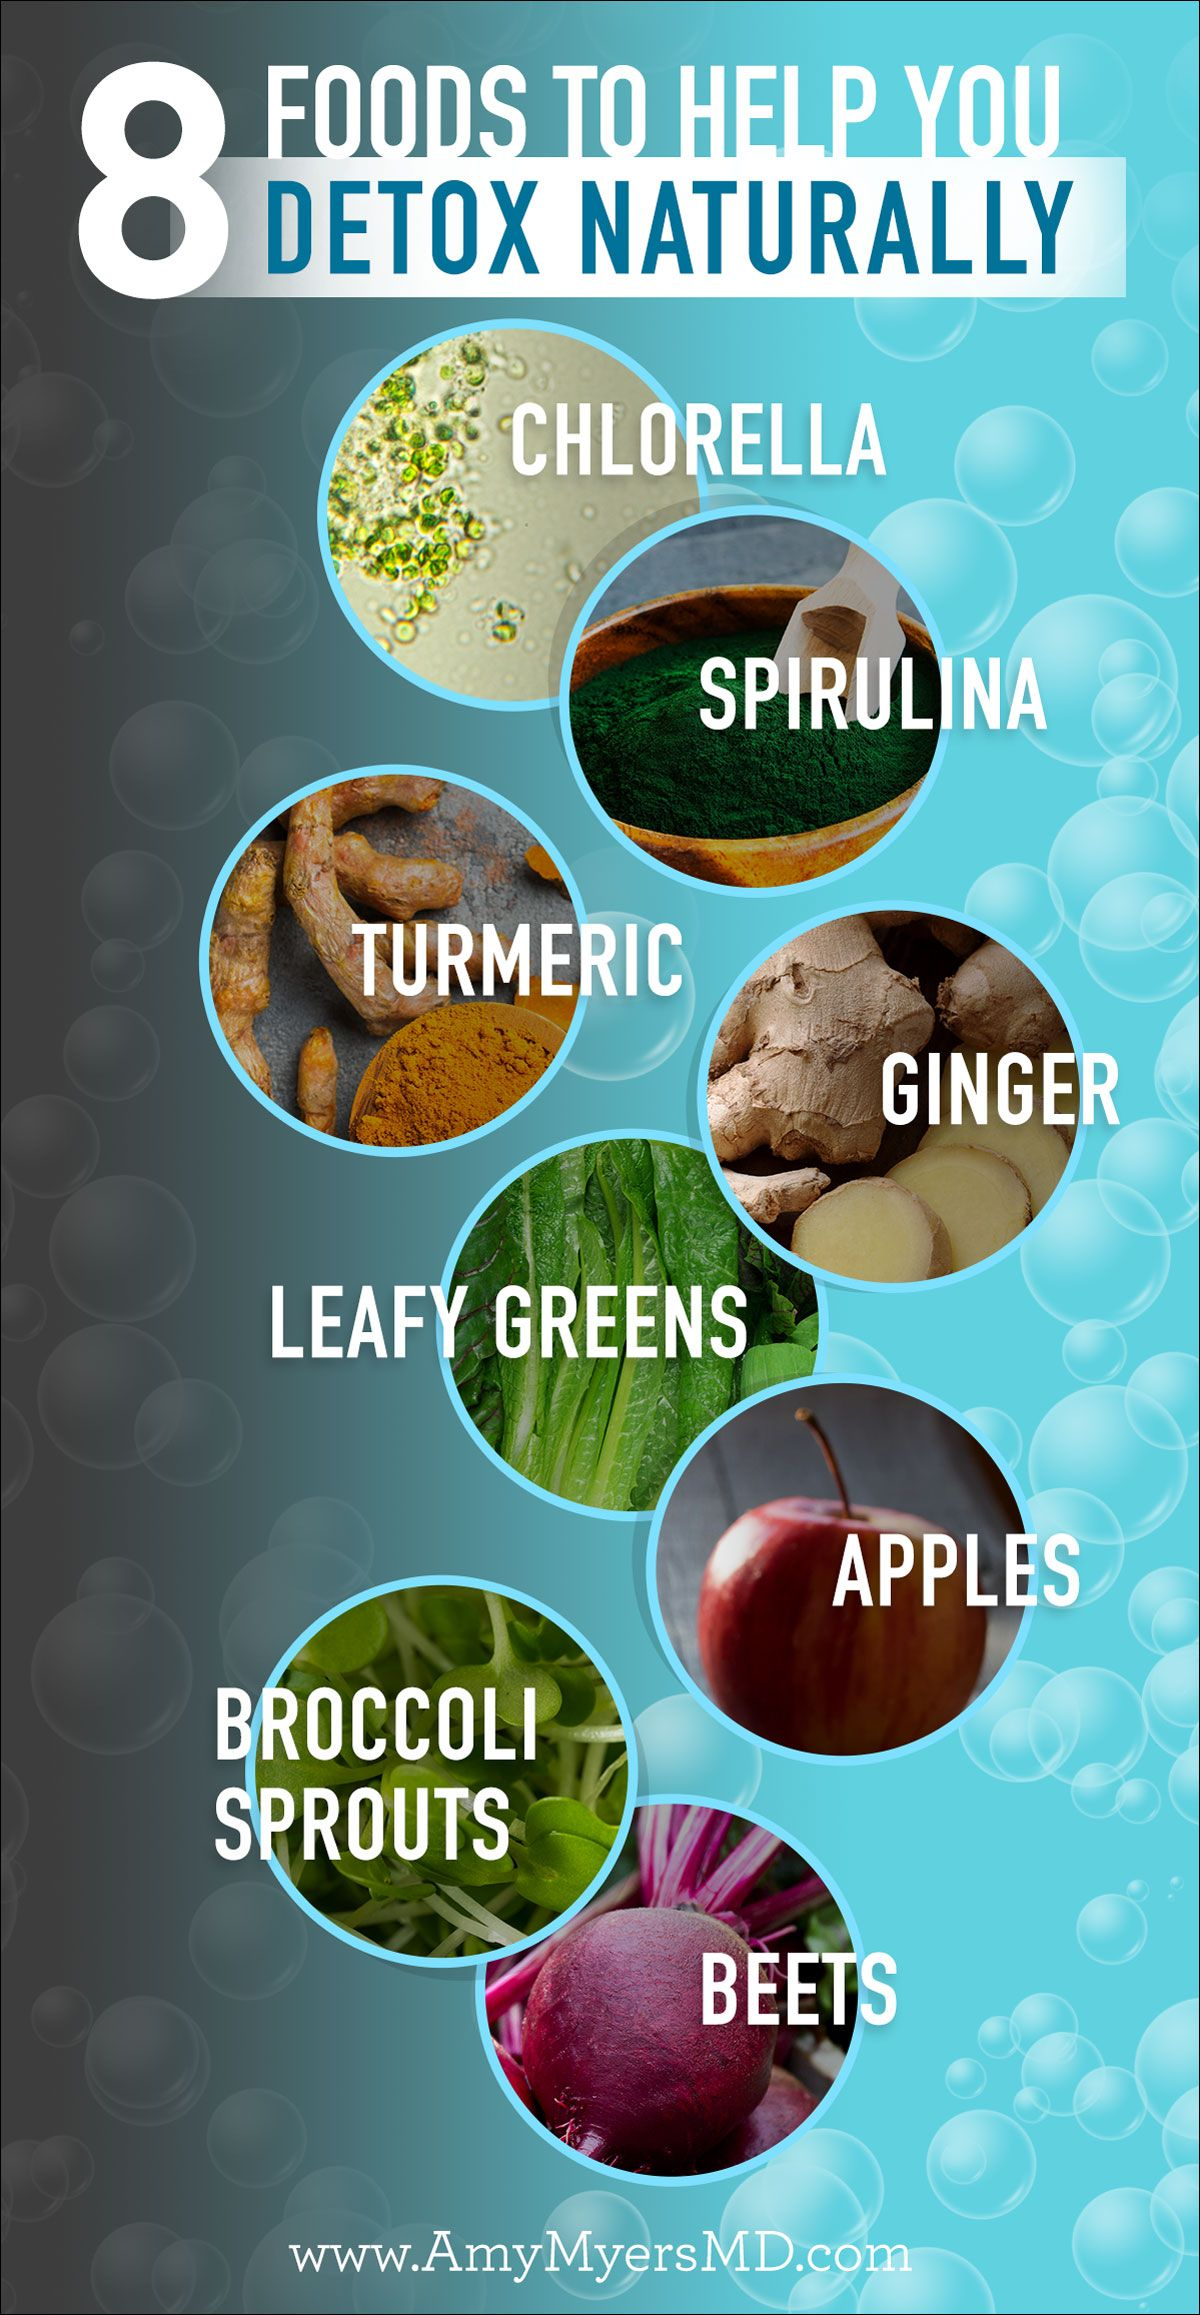 8 Foods To Help You Detox Naturally Amy Myers Md Natural Detox Detox Juice Natural Detox Drinks